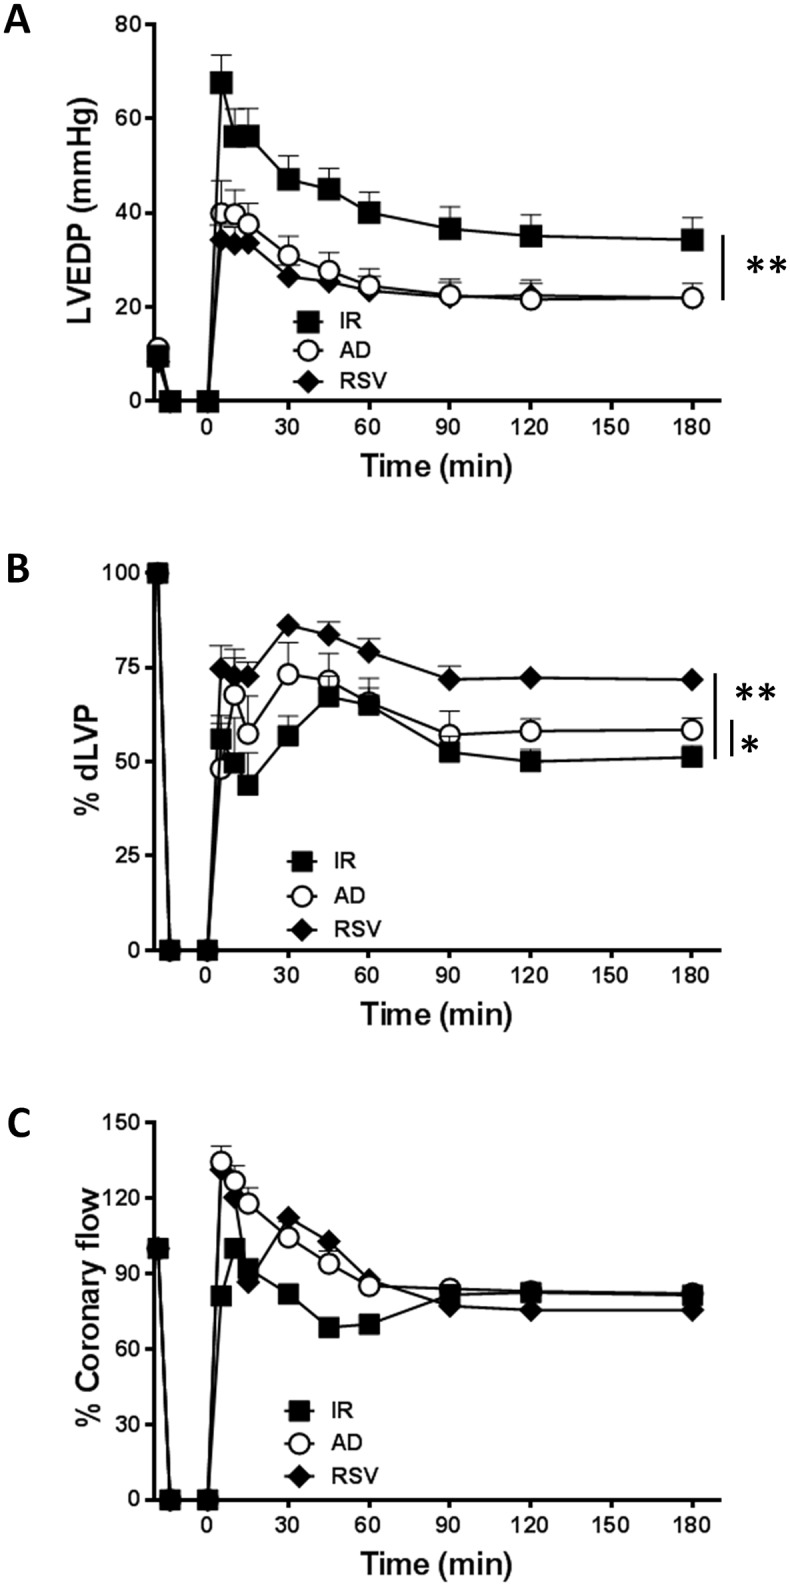 AD preconditioning improves post-ischemic recovery of ventricular function with effects partially overlapping those induced by RSV preconditioning. Hearts preconditioned with adiponectin (AD) were compared to hearts exposed to vehicle-administration (I/R) or resveratrol (RSV), used as a positive control of SIRT-1 activation. A. Diastolic function . Left ventricular end diastolic pressure (LVEDP, mmHg) during the 180 min of reperfusion following 30 min of global ischemia (**p